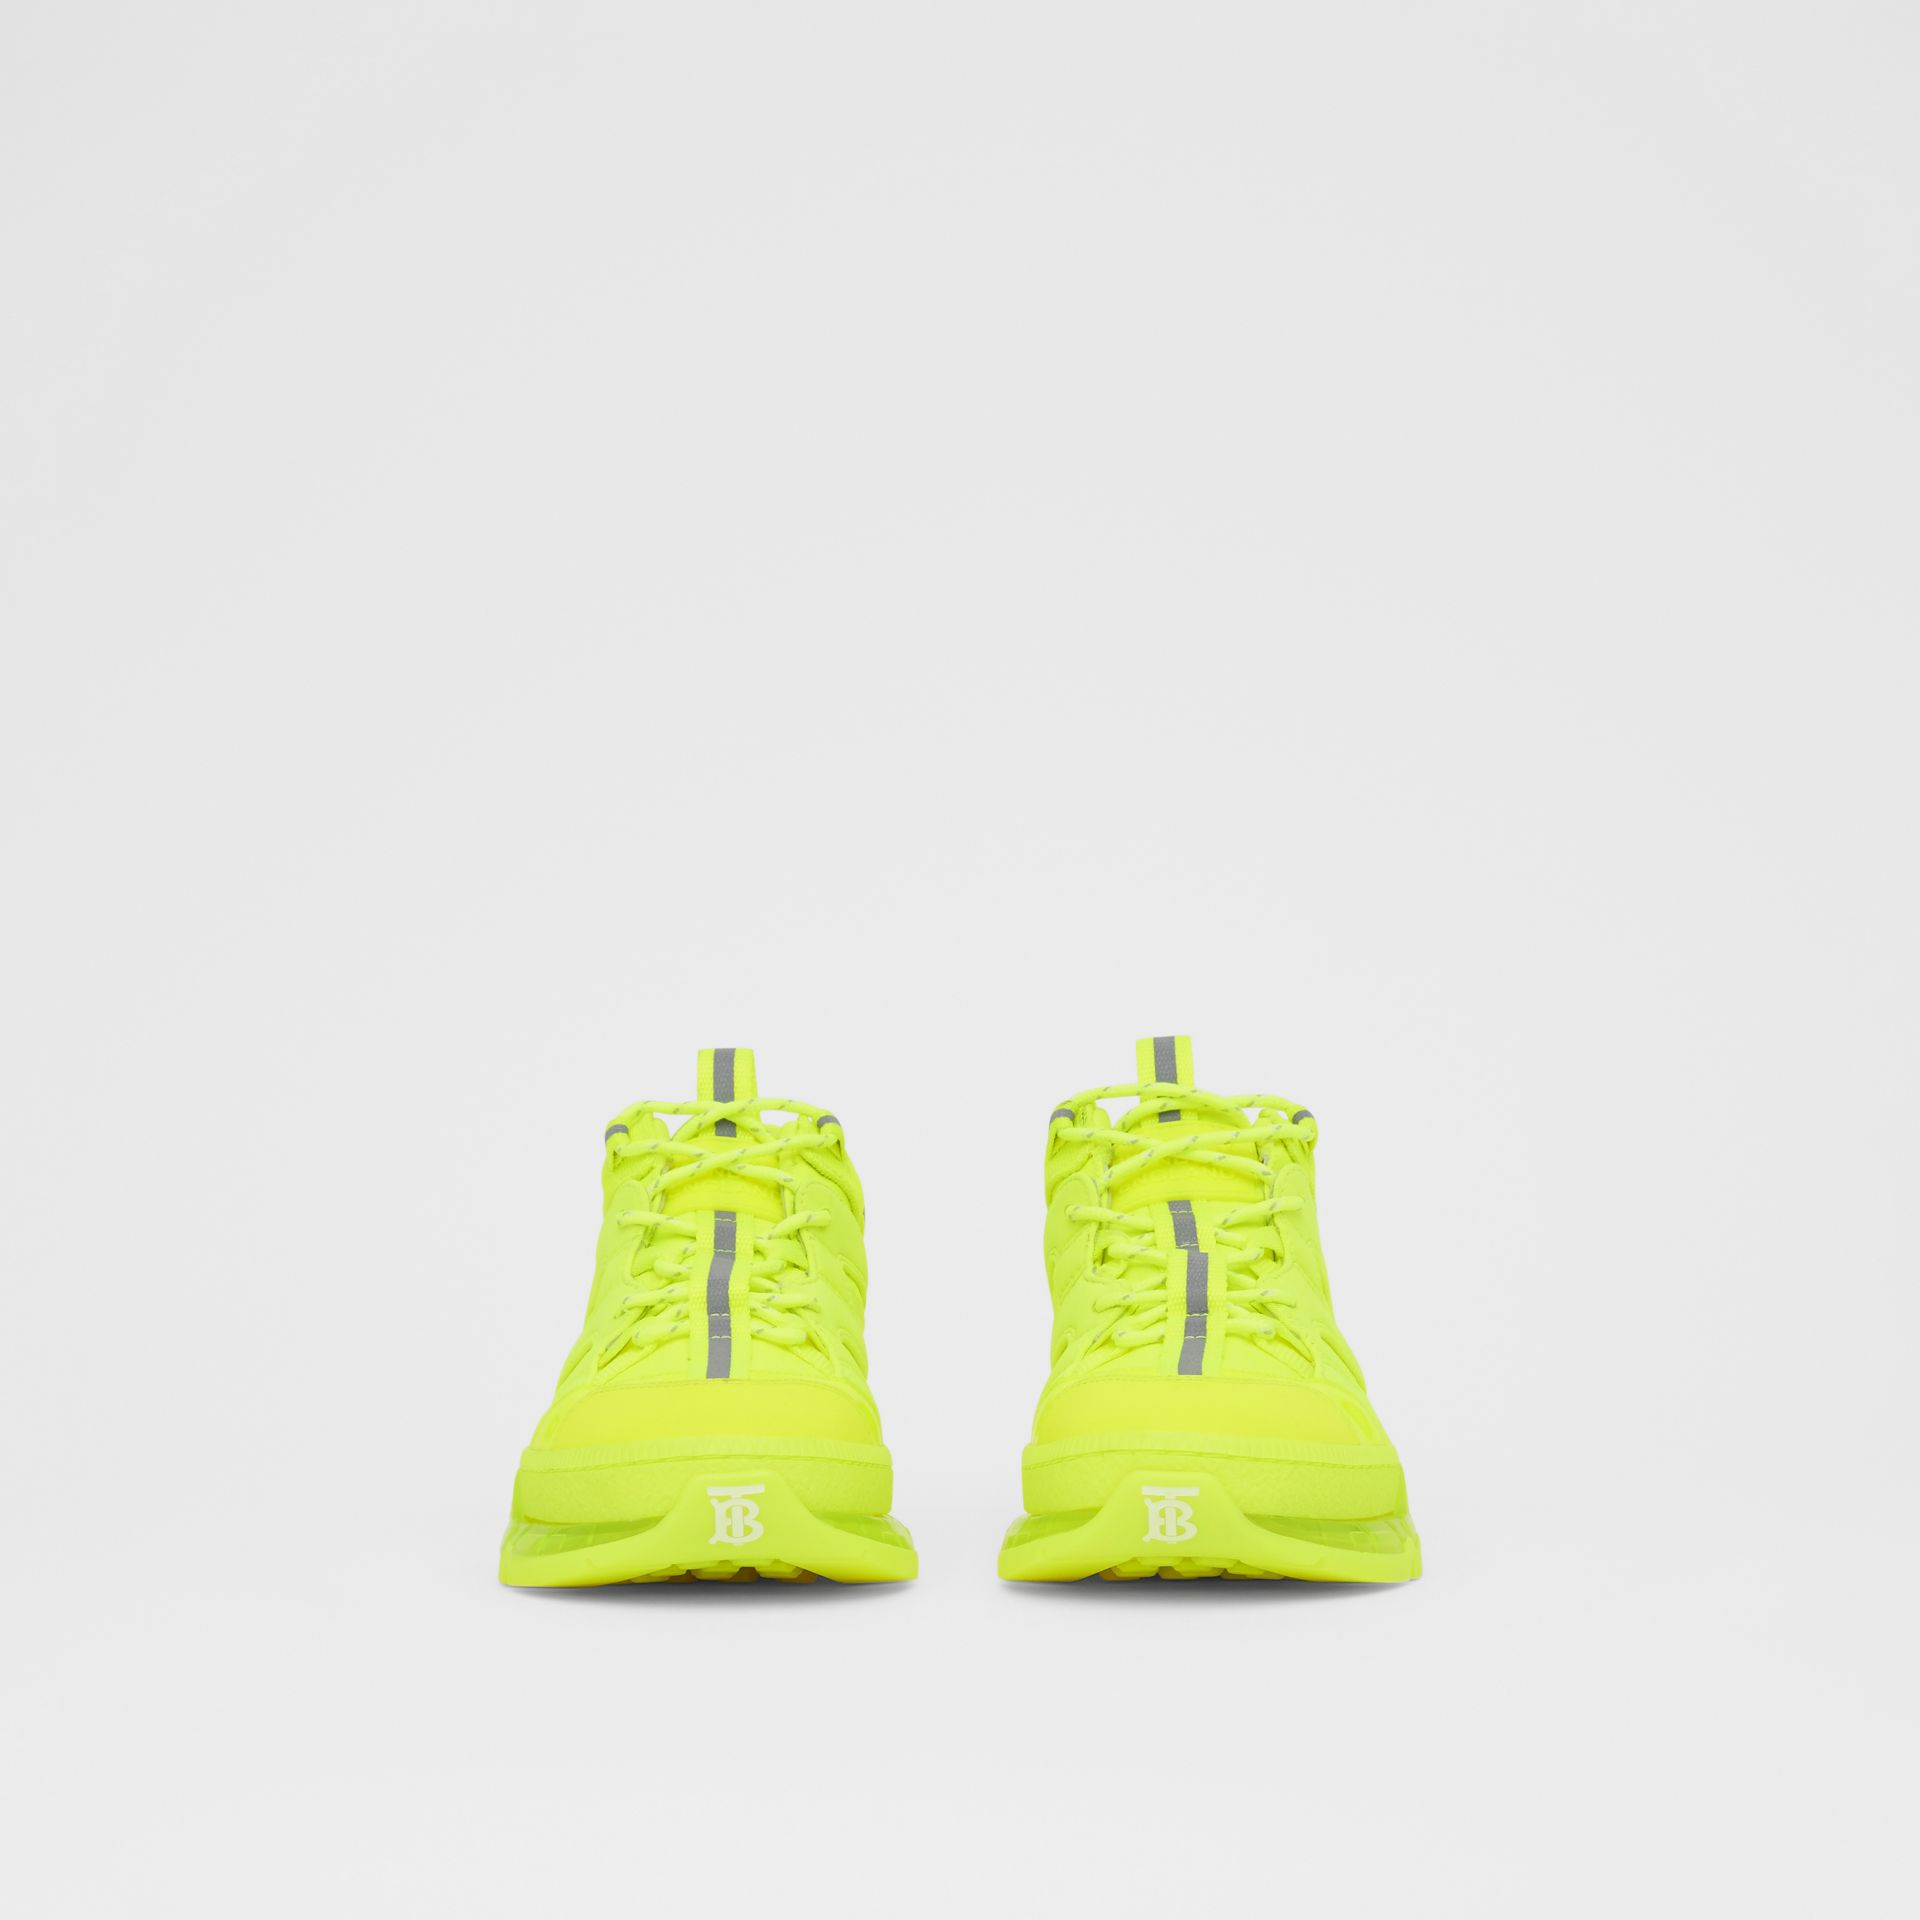 Nylon and Cotton Union Sneakers in Fluorescent Yellow - Women | Burberry United Kingdom - gallery image 3